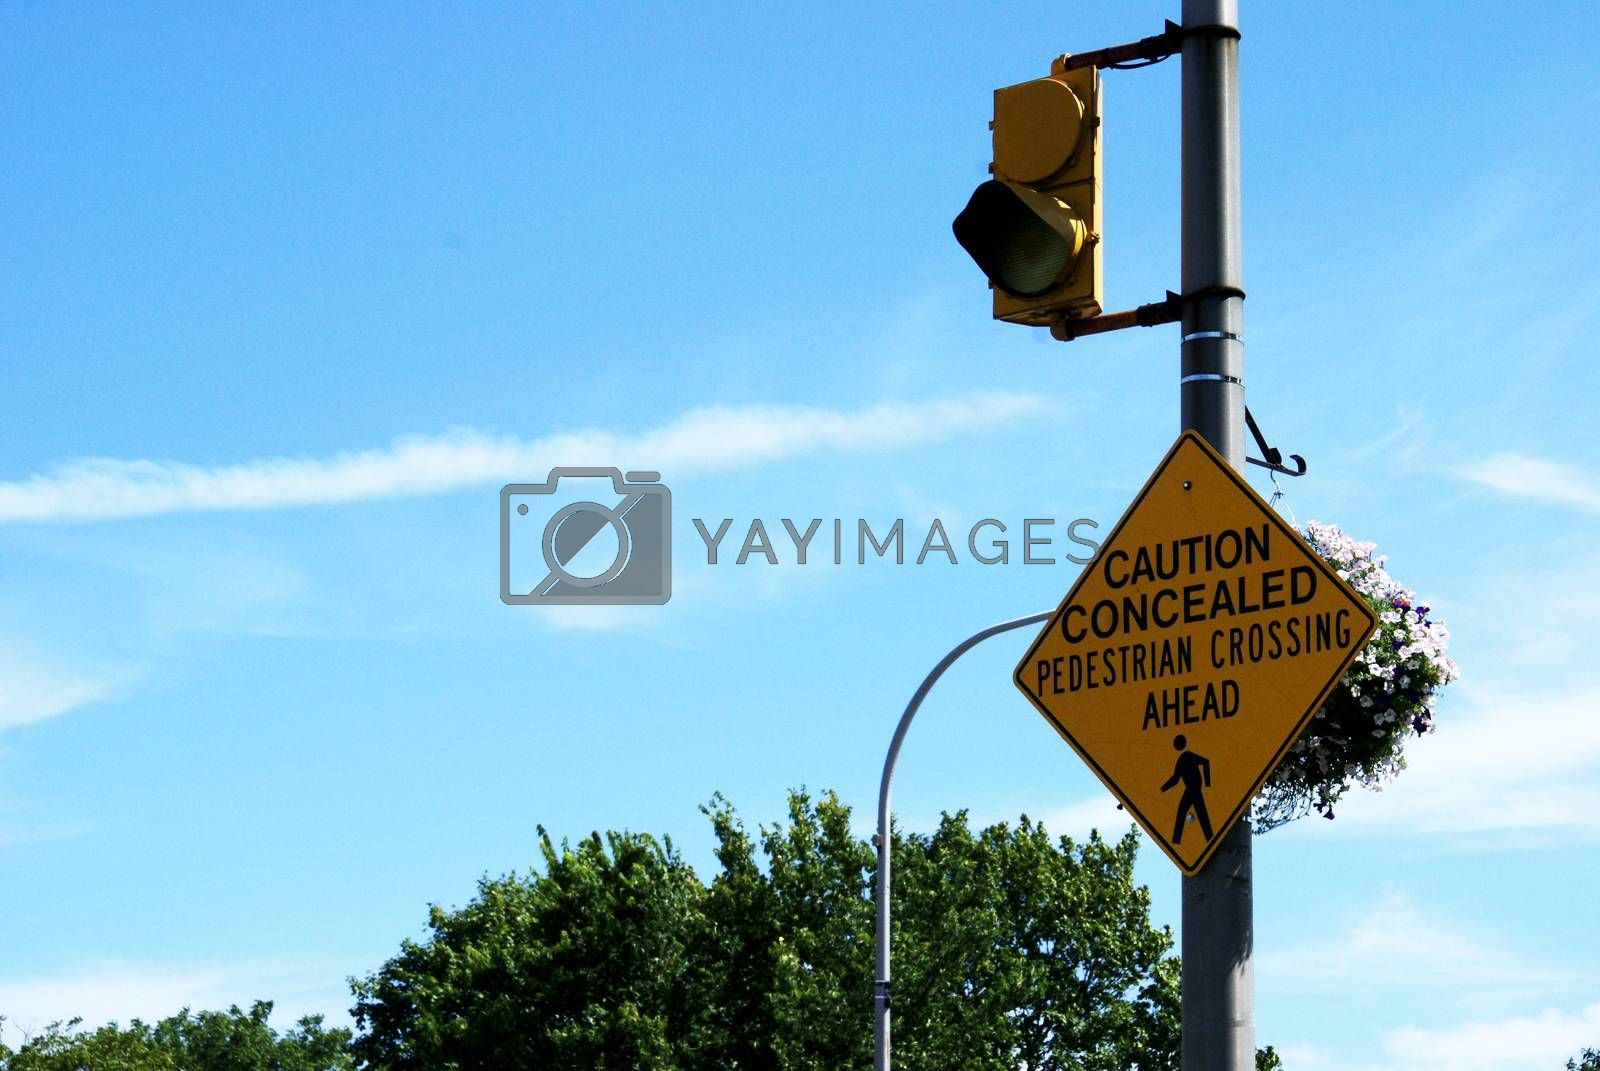 A sign that flashes a yellow warning light to notify drivers of the concealed pedestrian crossing ahead.